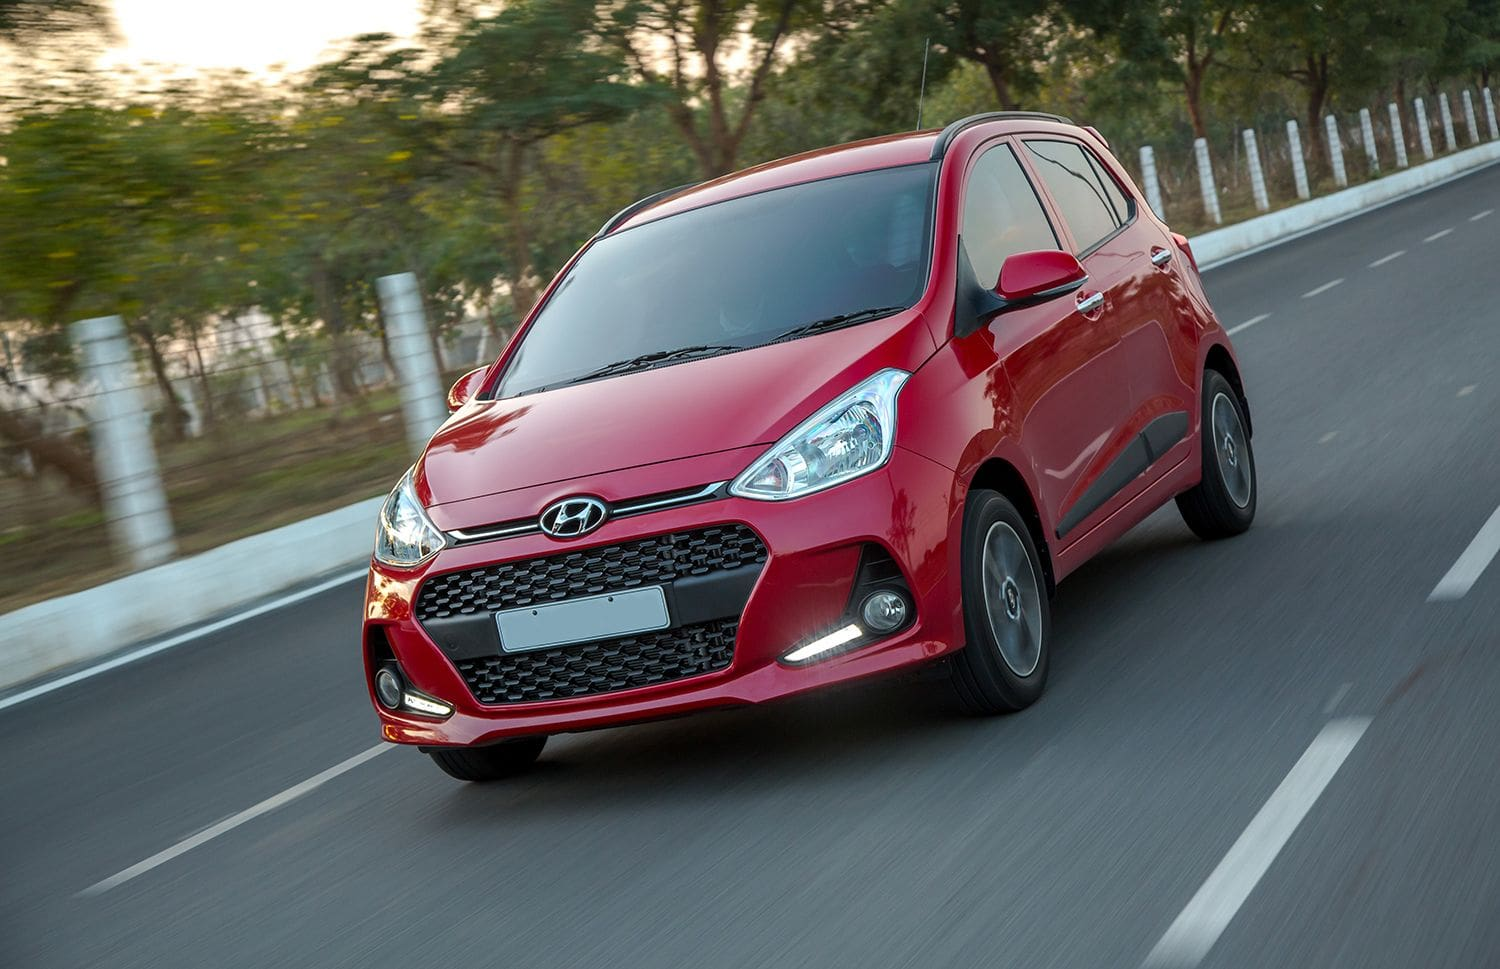 2017 Hyundai Grand i10 Facelift Diesel : Quick Review